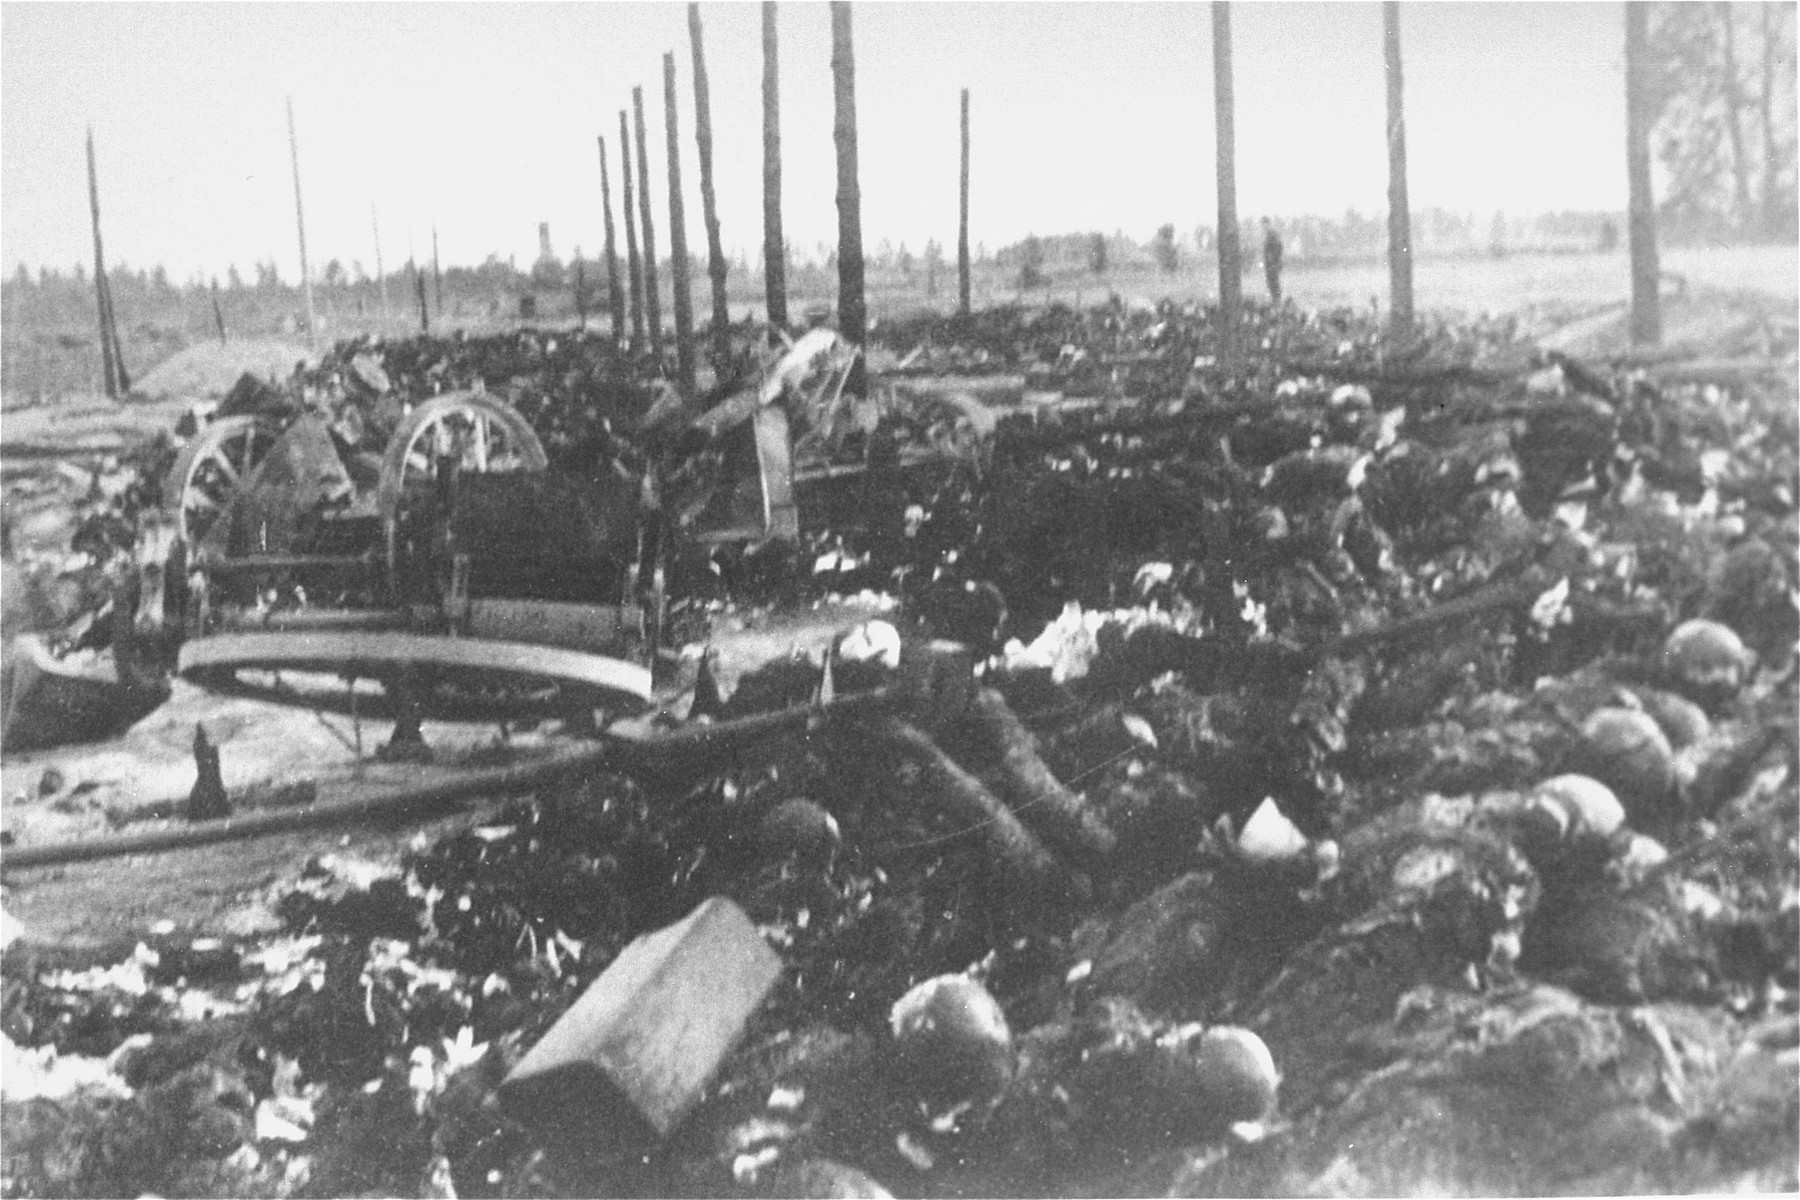 View of the charred remains of Jewish victims burned by the Germans in the Maly Trostinets concentration camp.